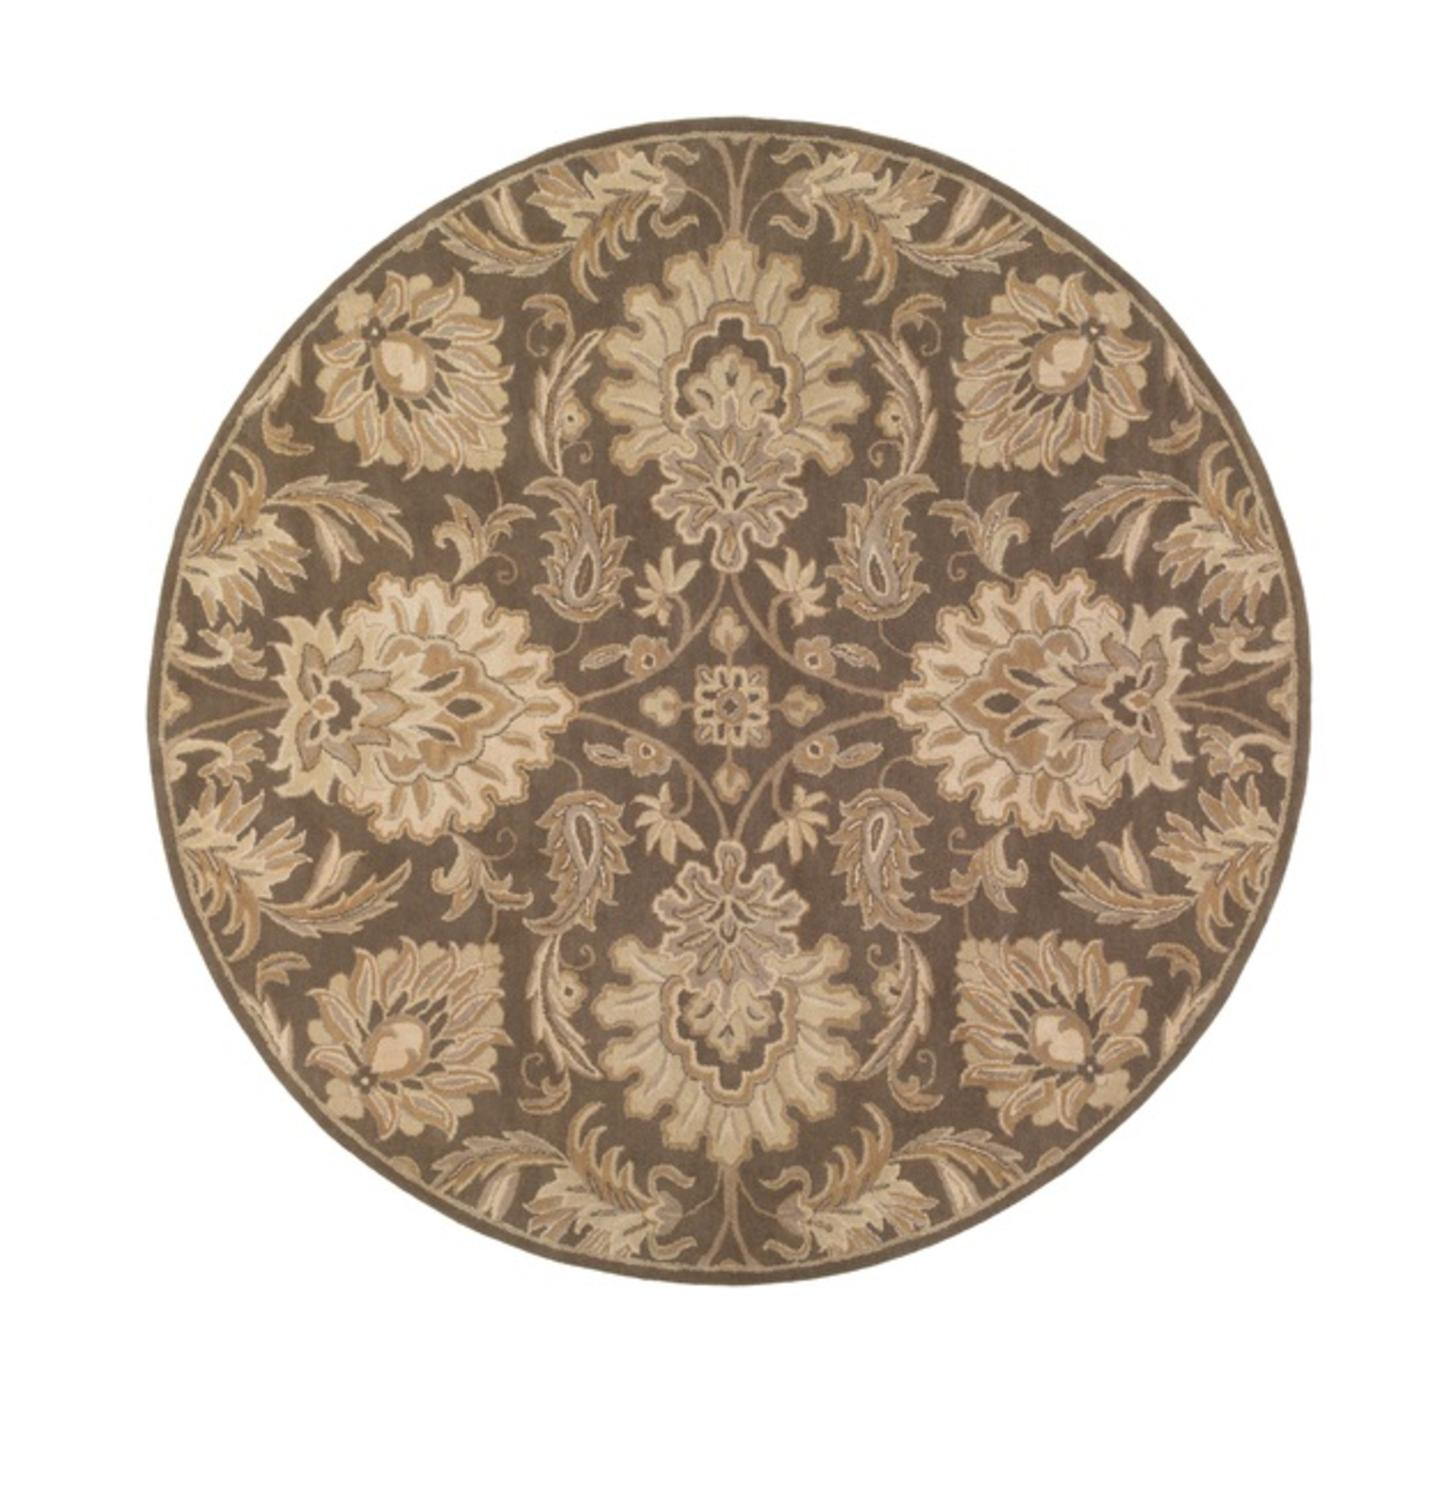 4' Cornelian Quartz Gray and Taupe Brown Hand Tufted Wool Round Area Throw Rug